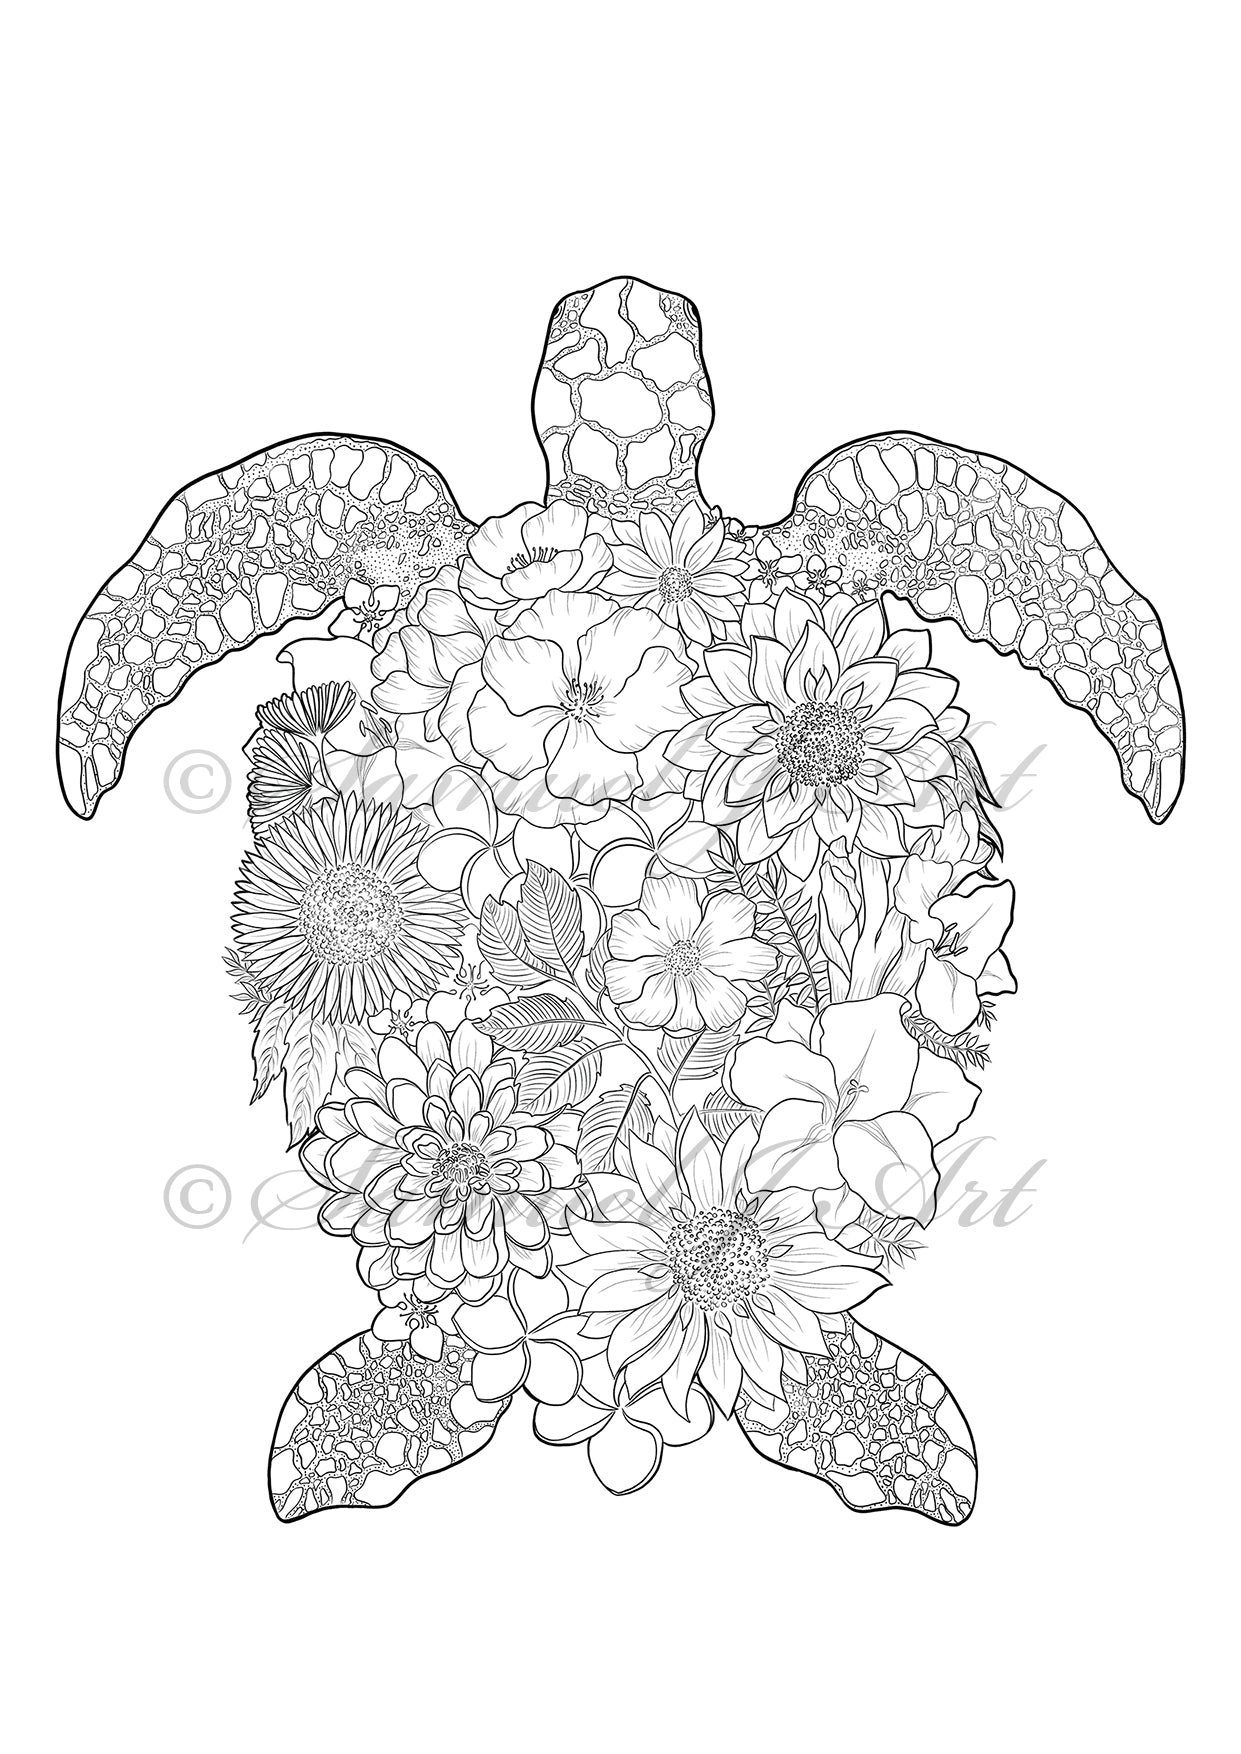 Floral Turtle - Colouring Template - Digital Download